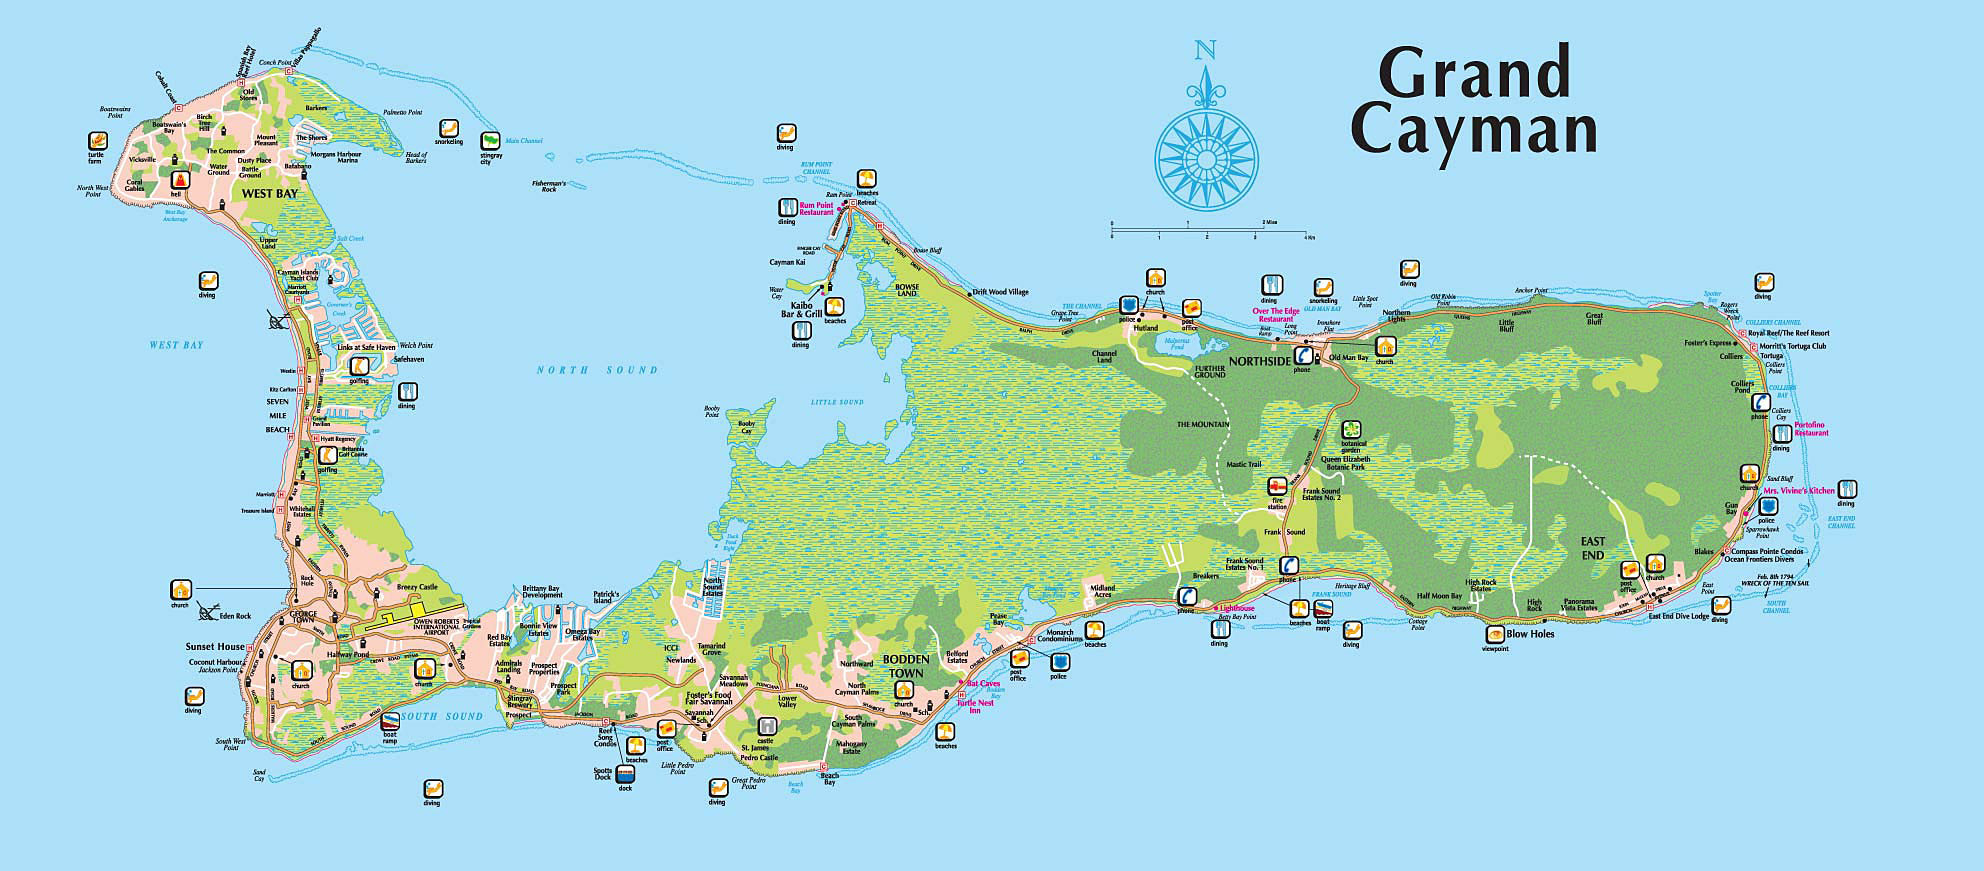 Road Map Of The Cayman Islands